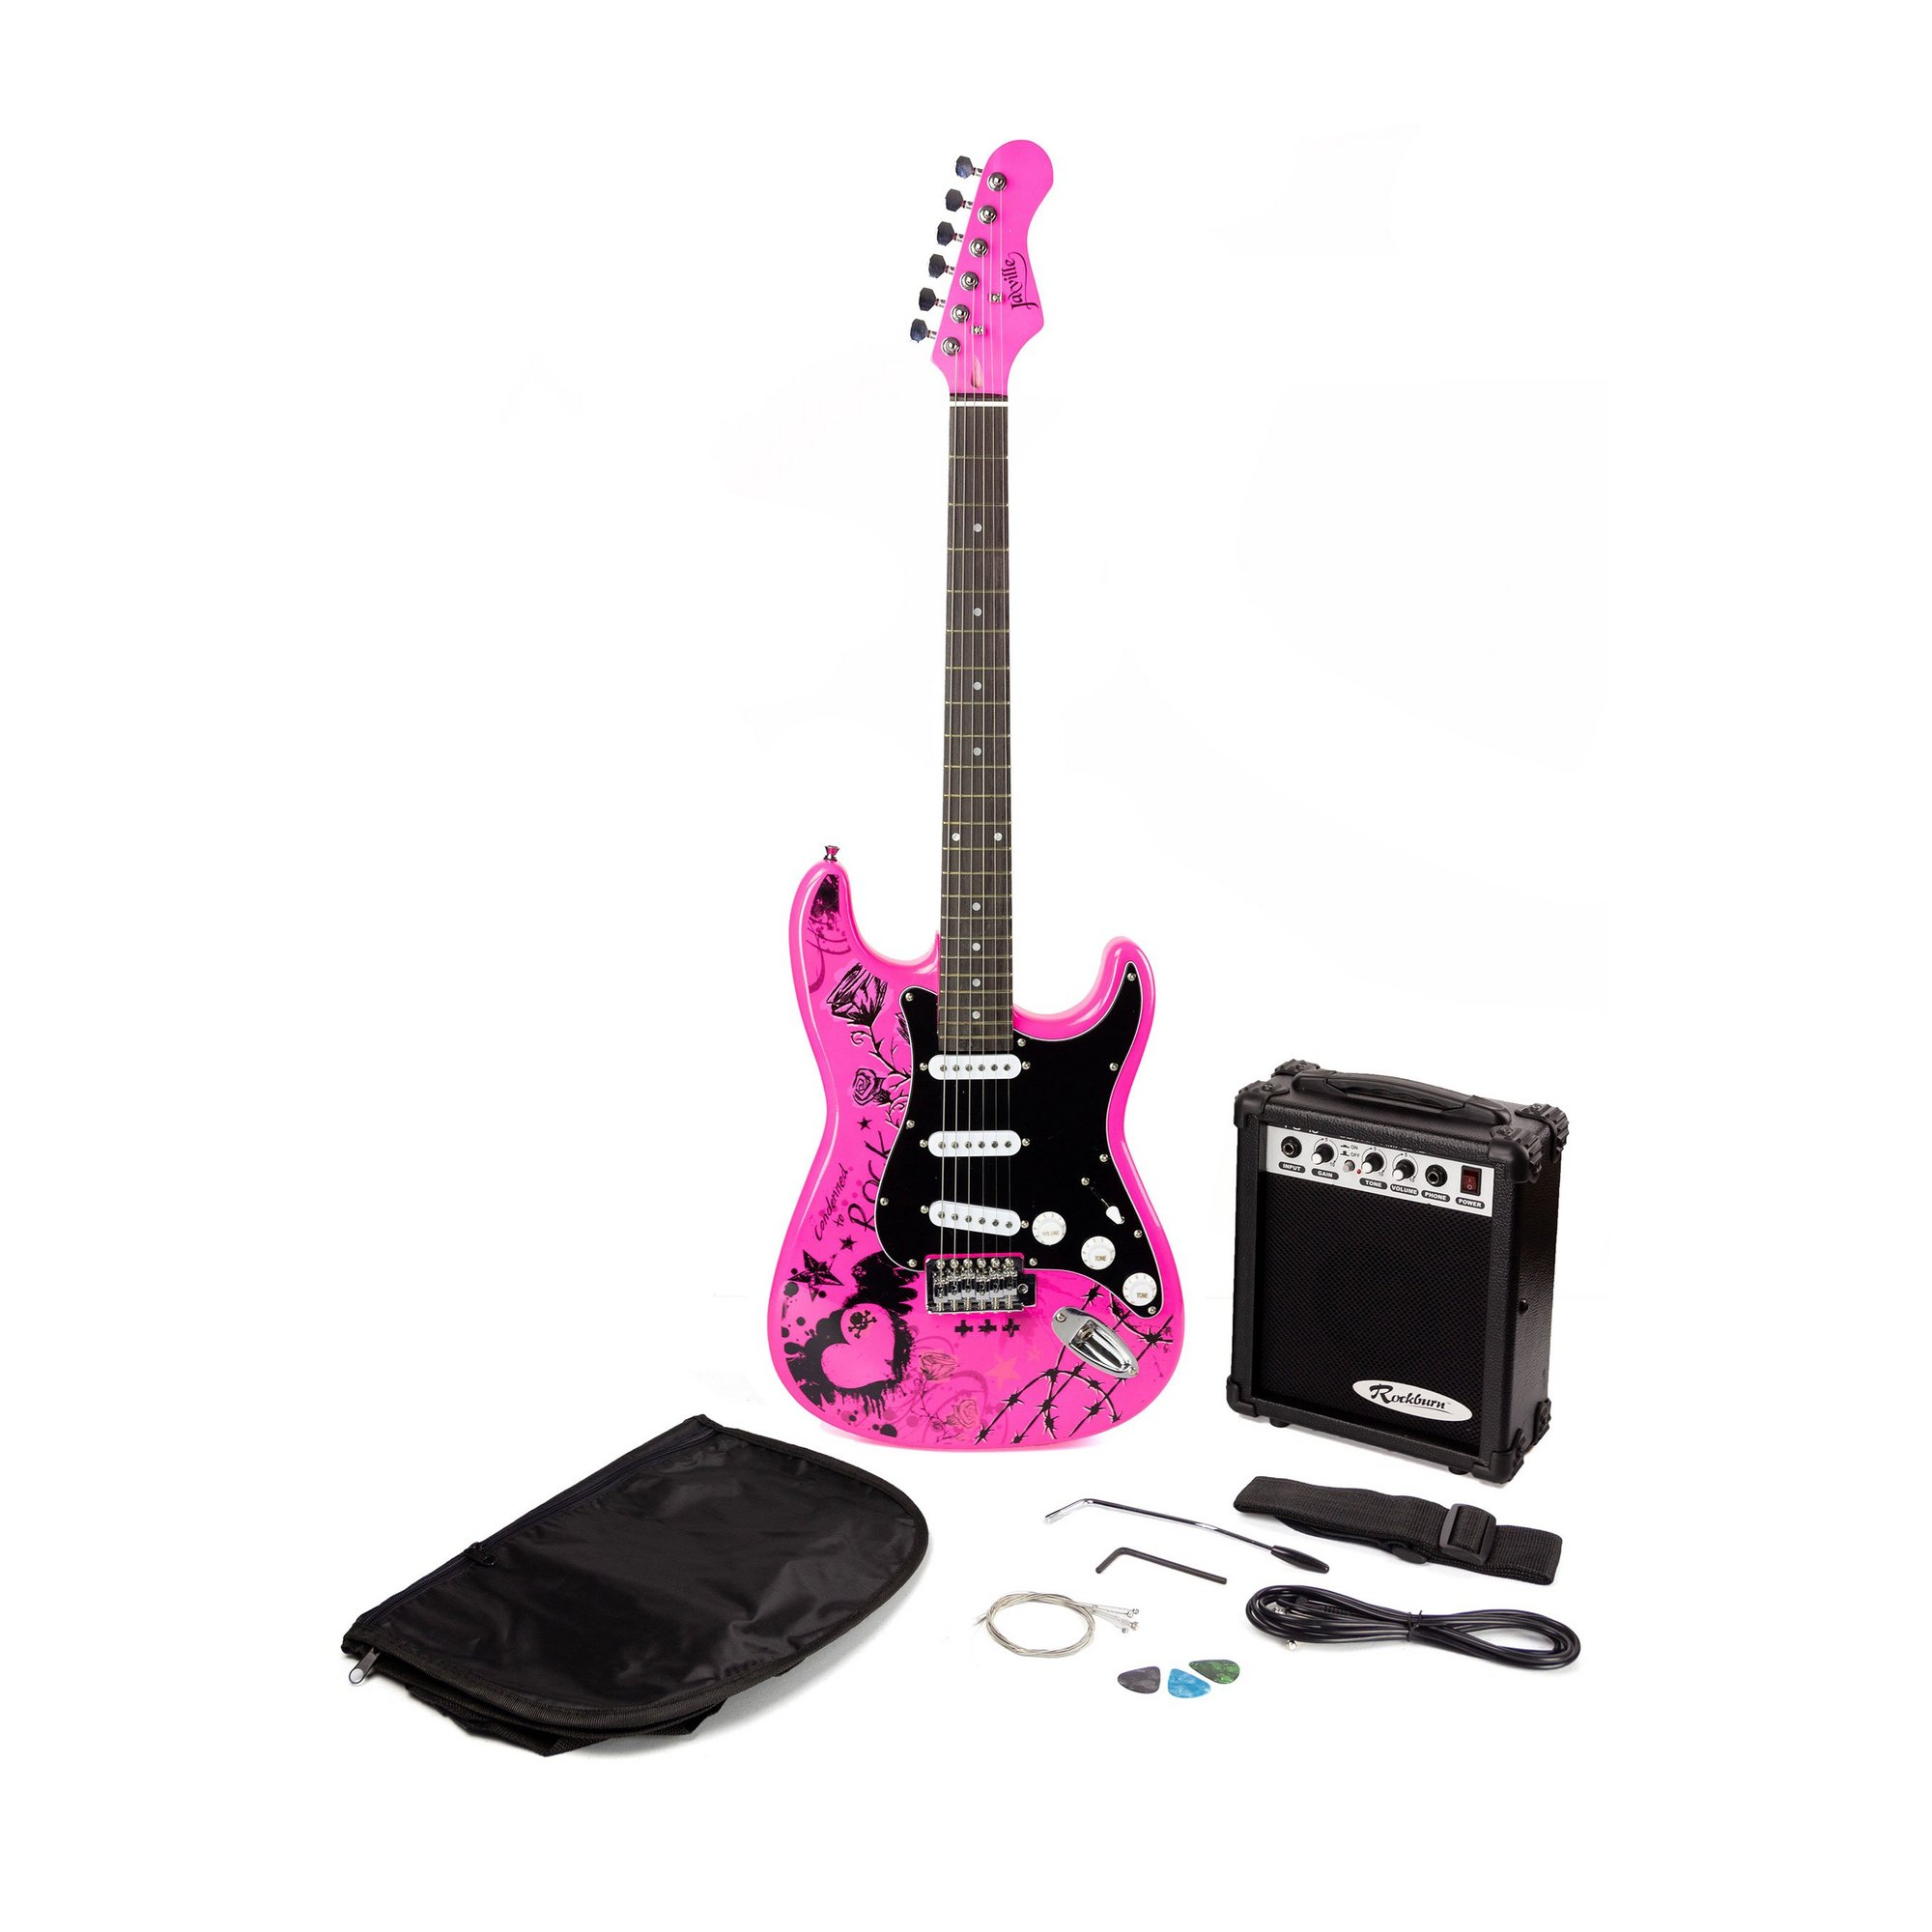 Image of Jaxville Electric Guitar Package - Pink Punk